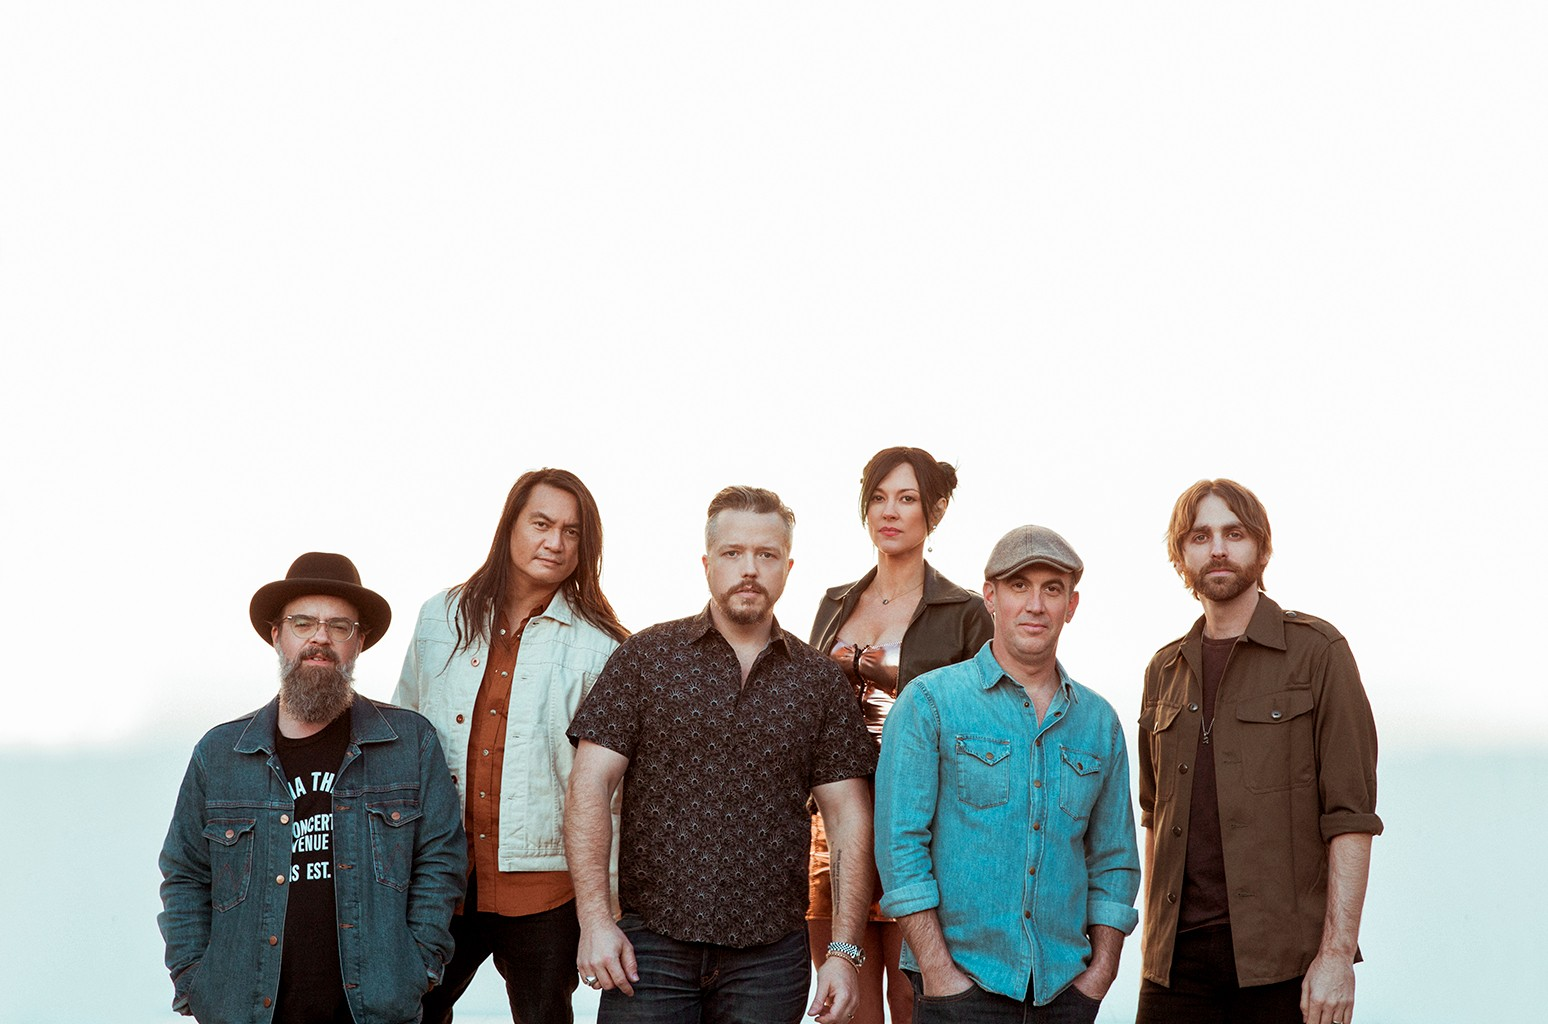 Jason Isbell, Grace Potter & More to Perform at Socially-Distanced Concert Vacation